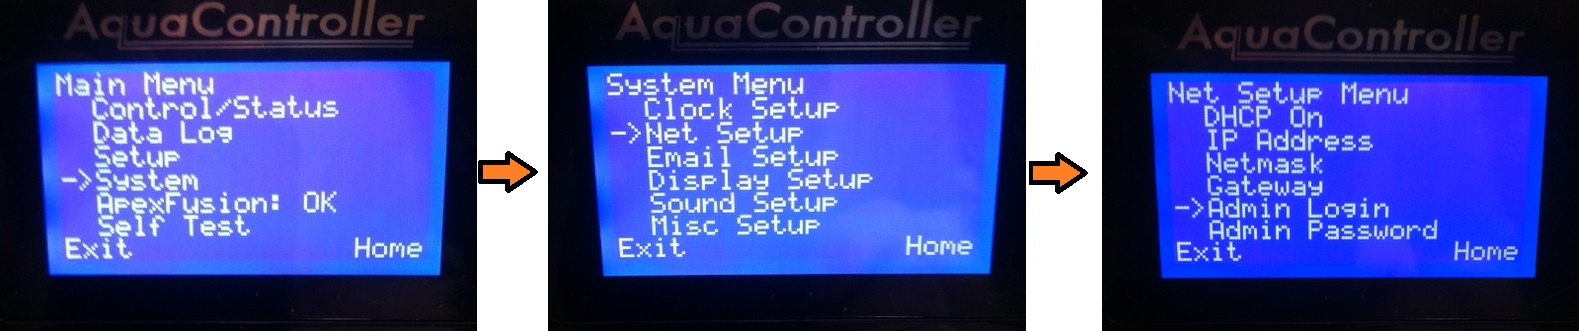 How To Access Your Quot Classic Dashboard Quot Pc Neptune Systems